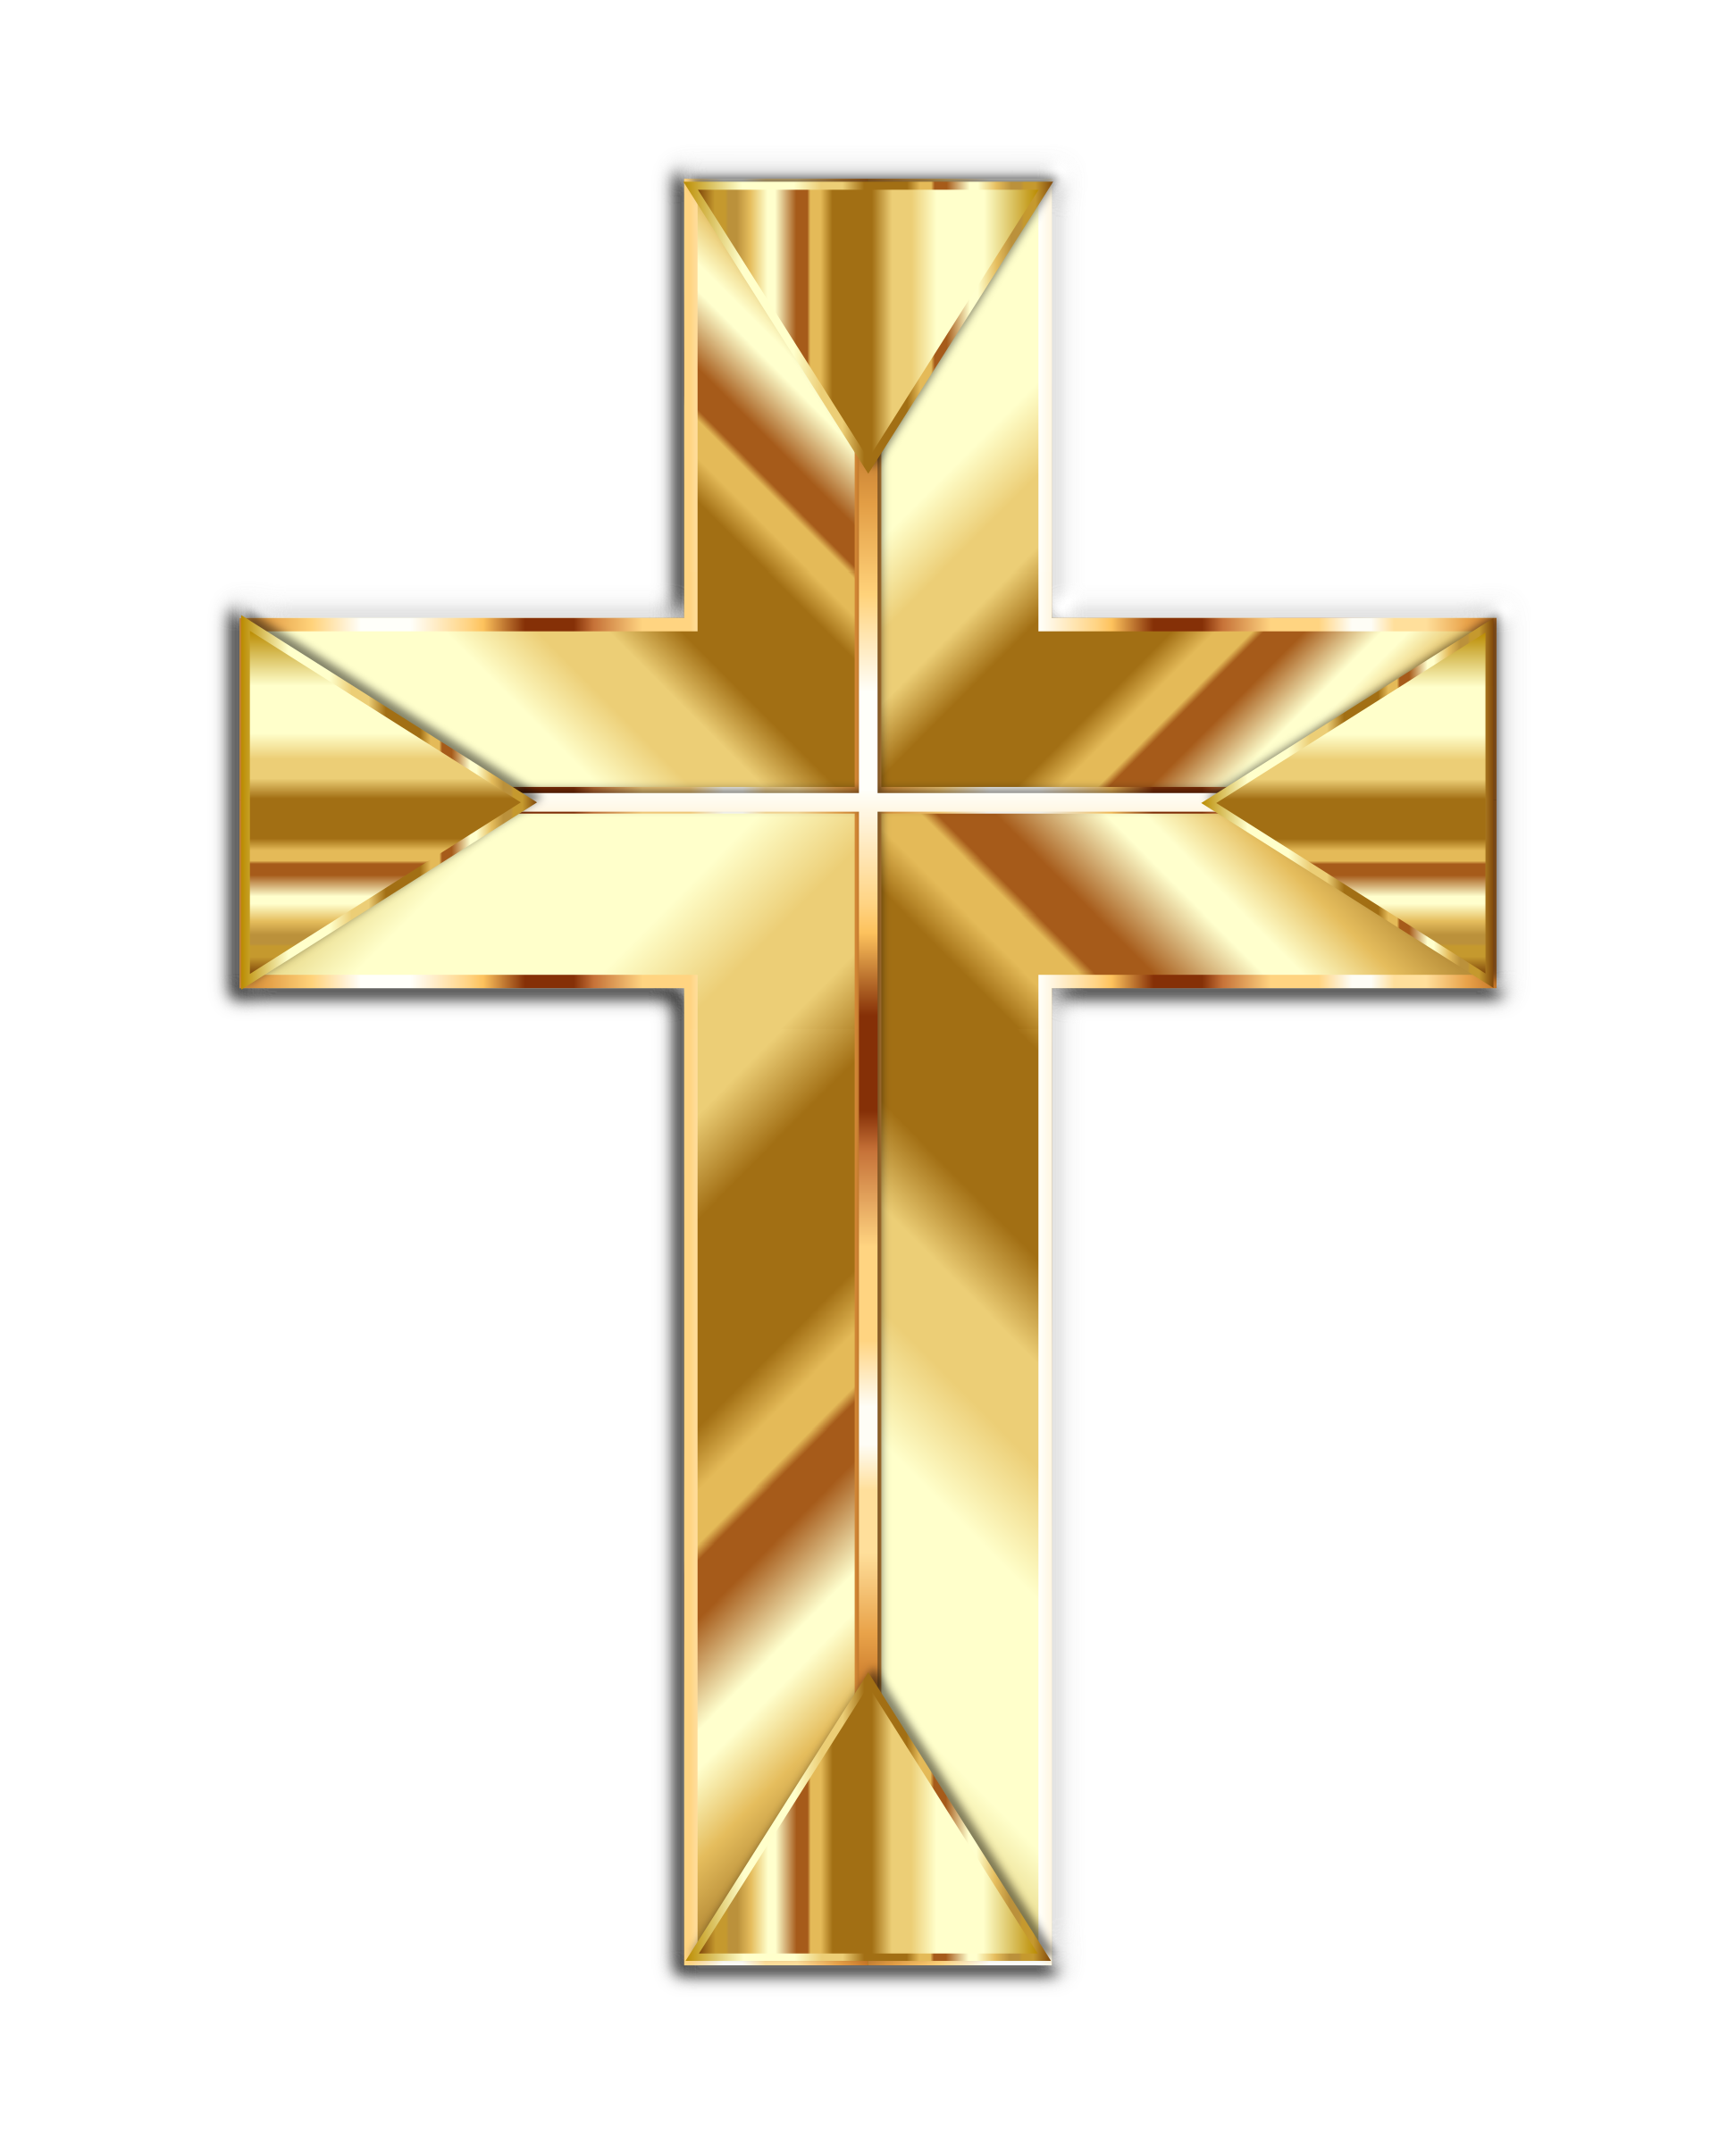 Crucifix clipart big cross. Golden fixed image png